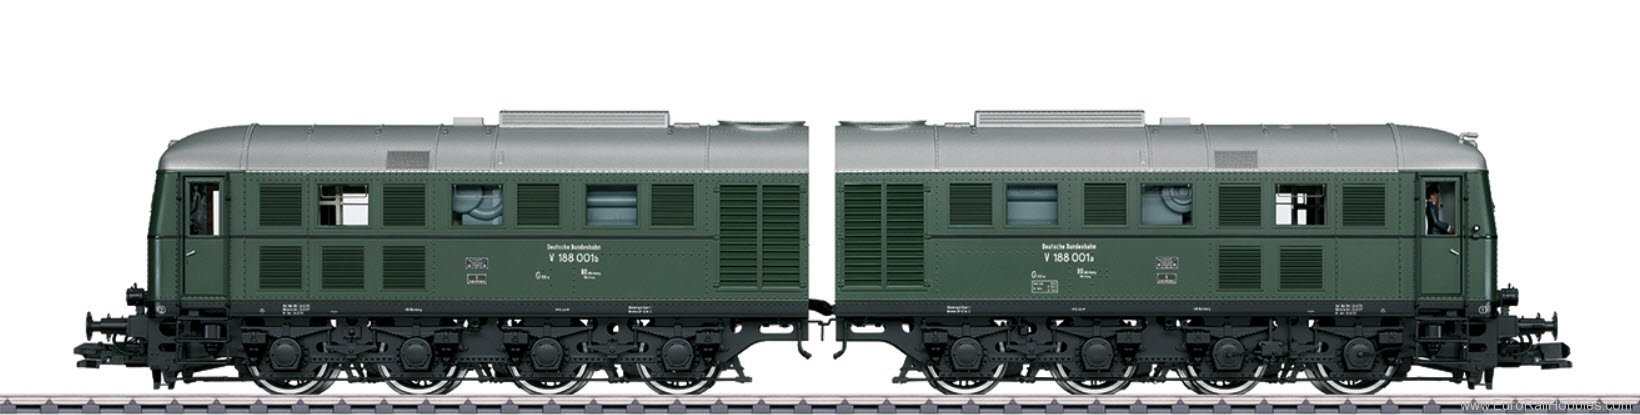 Marklin 55286 DB V 188 001 a/b Double Diesel Locomotive, (b